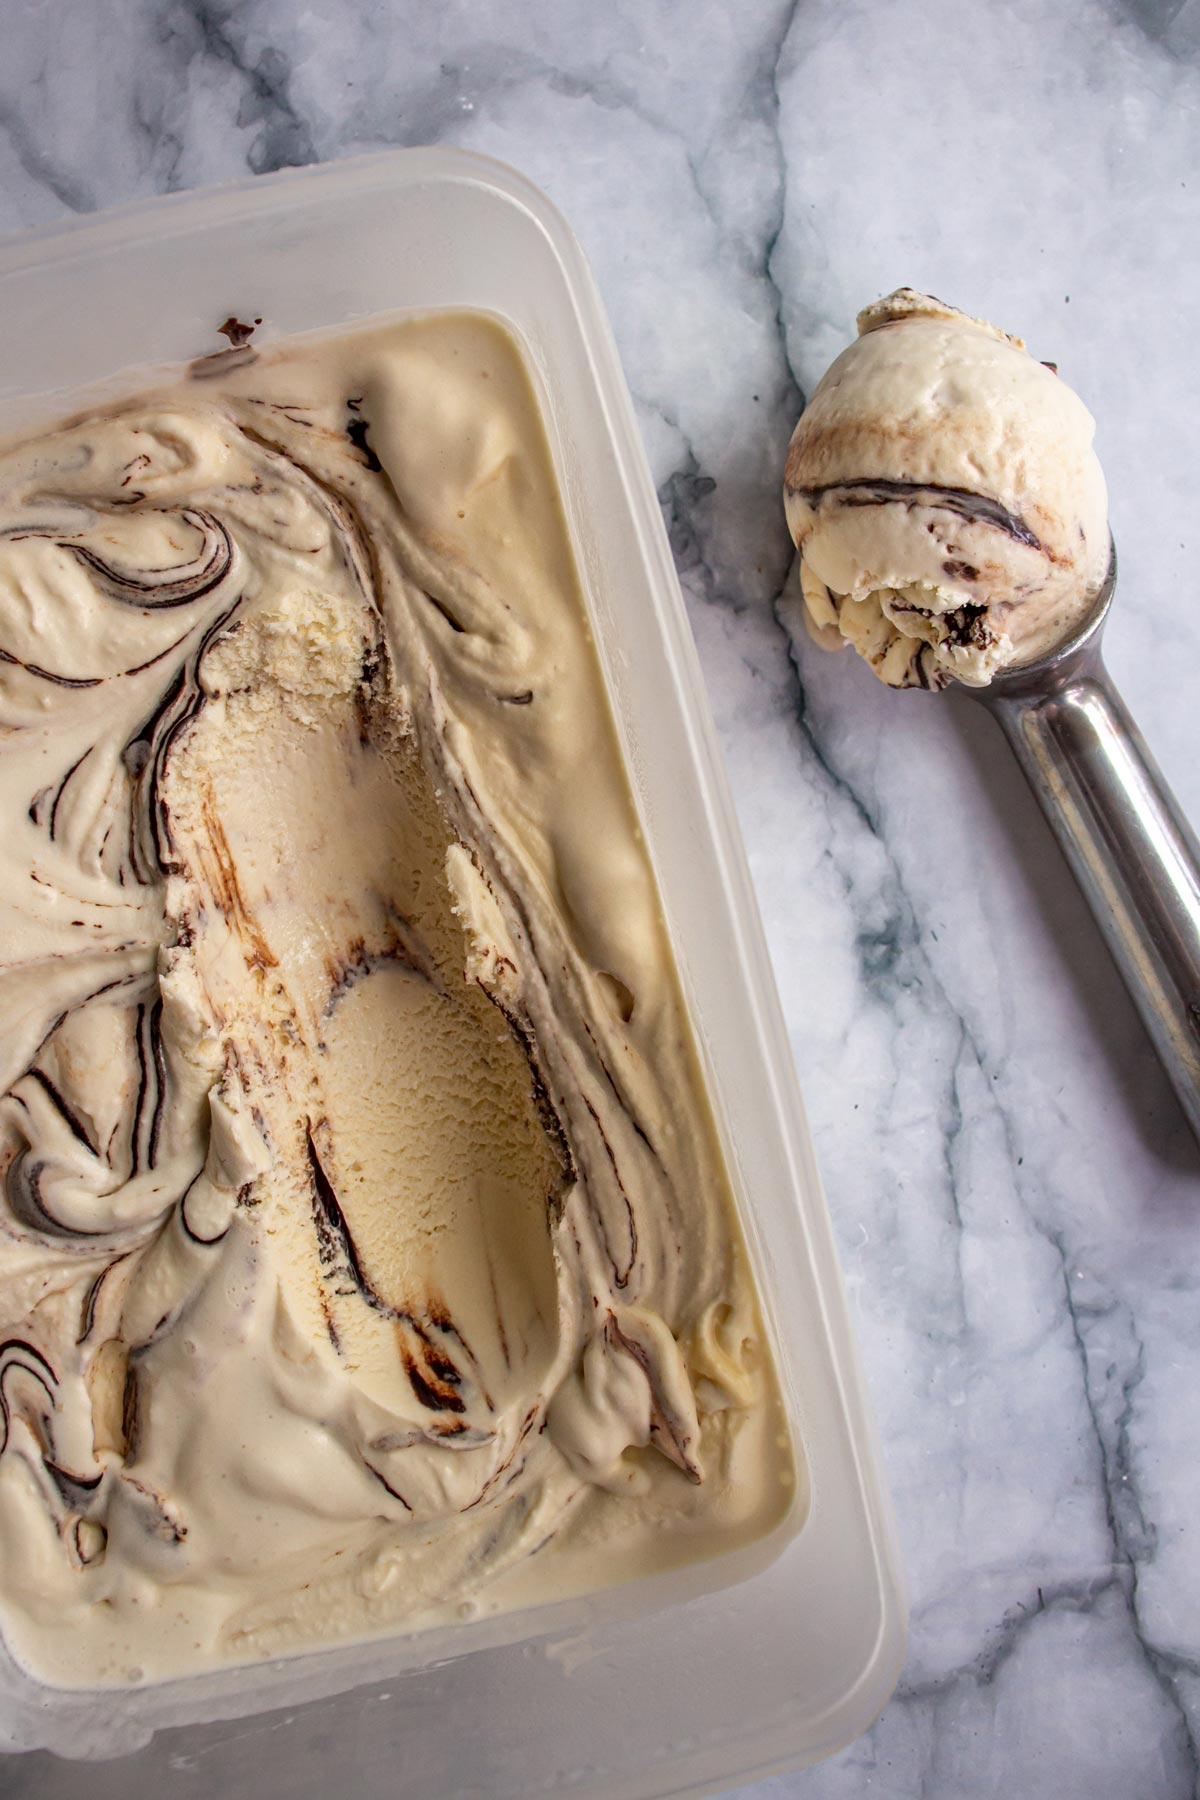 A rectangular container of ice cream with an ice cream scoop of ice cream beside it.